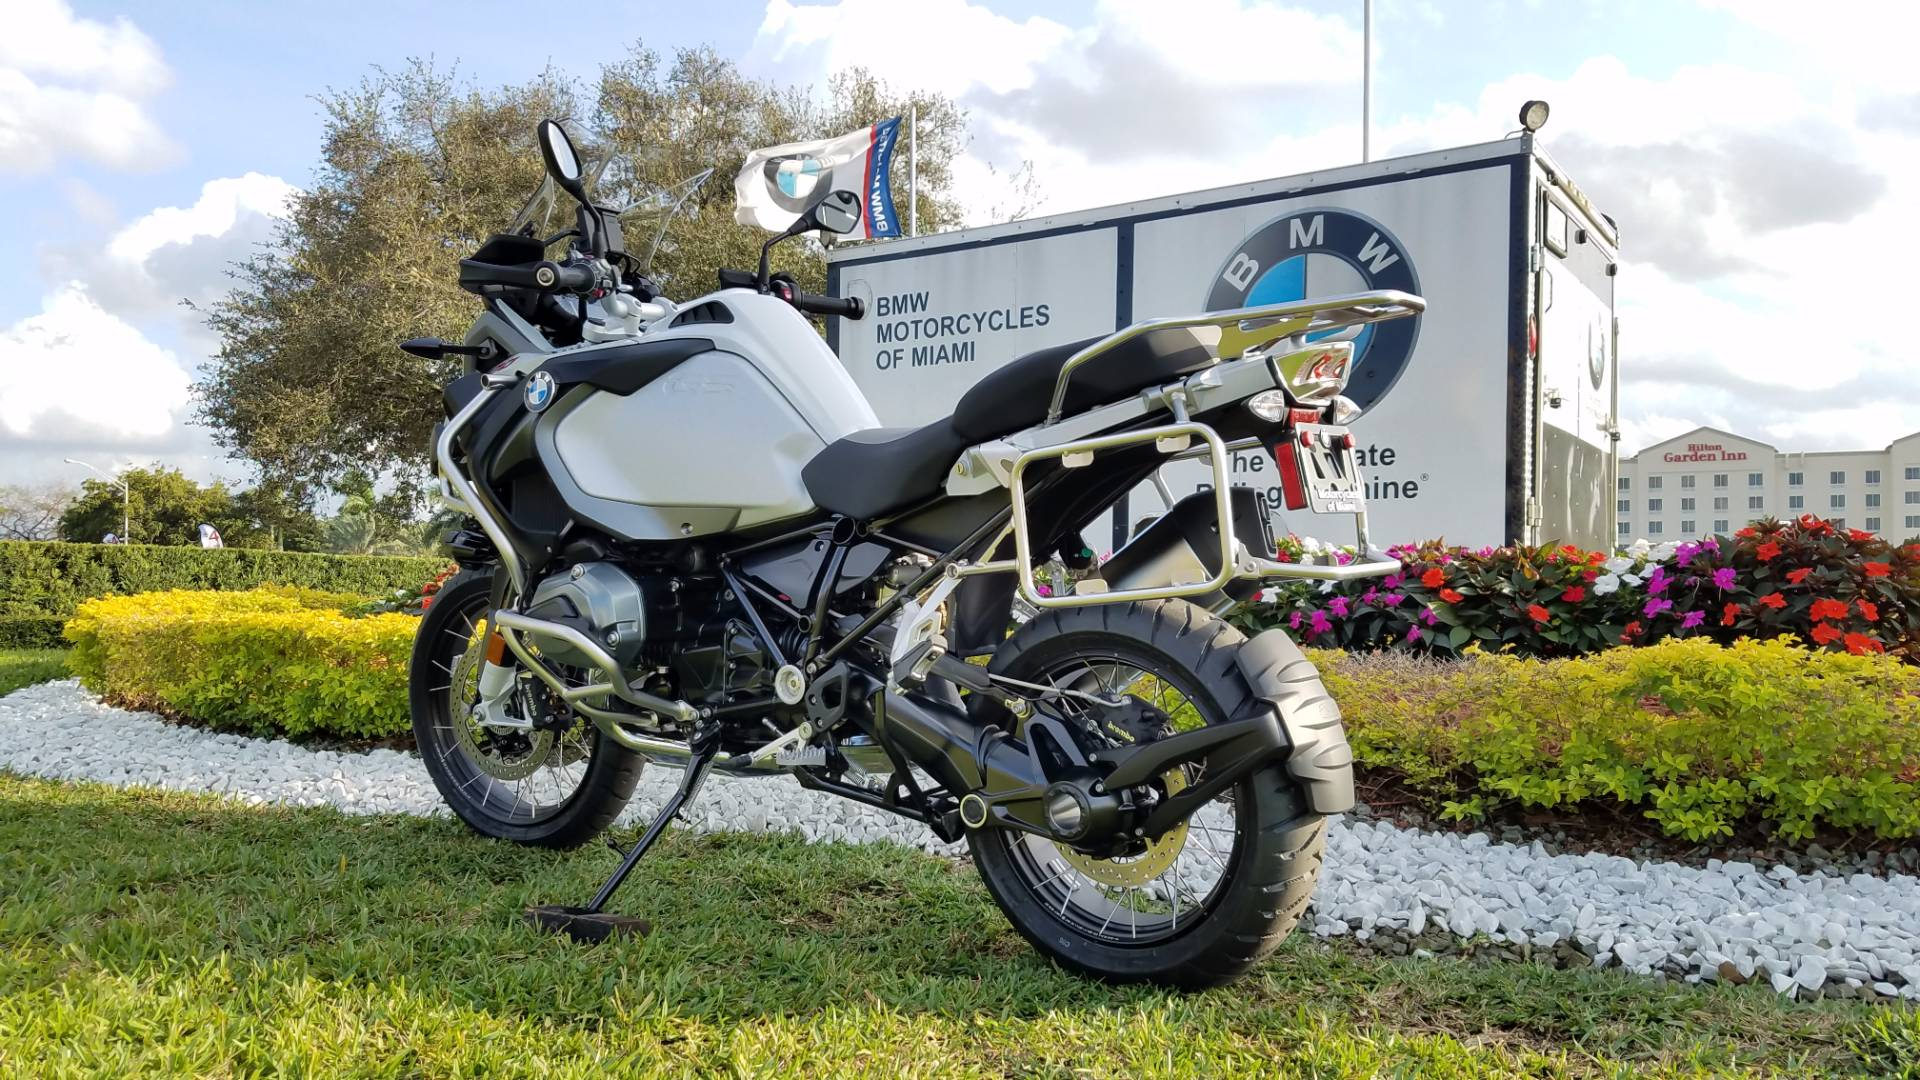 New 2017 BMW R 1200 GSA White For Sale, R 1200GS Adventure For Sale, BMW Motorcycle Adventure, new BMW Motorcycle